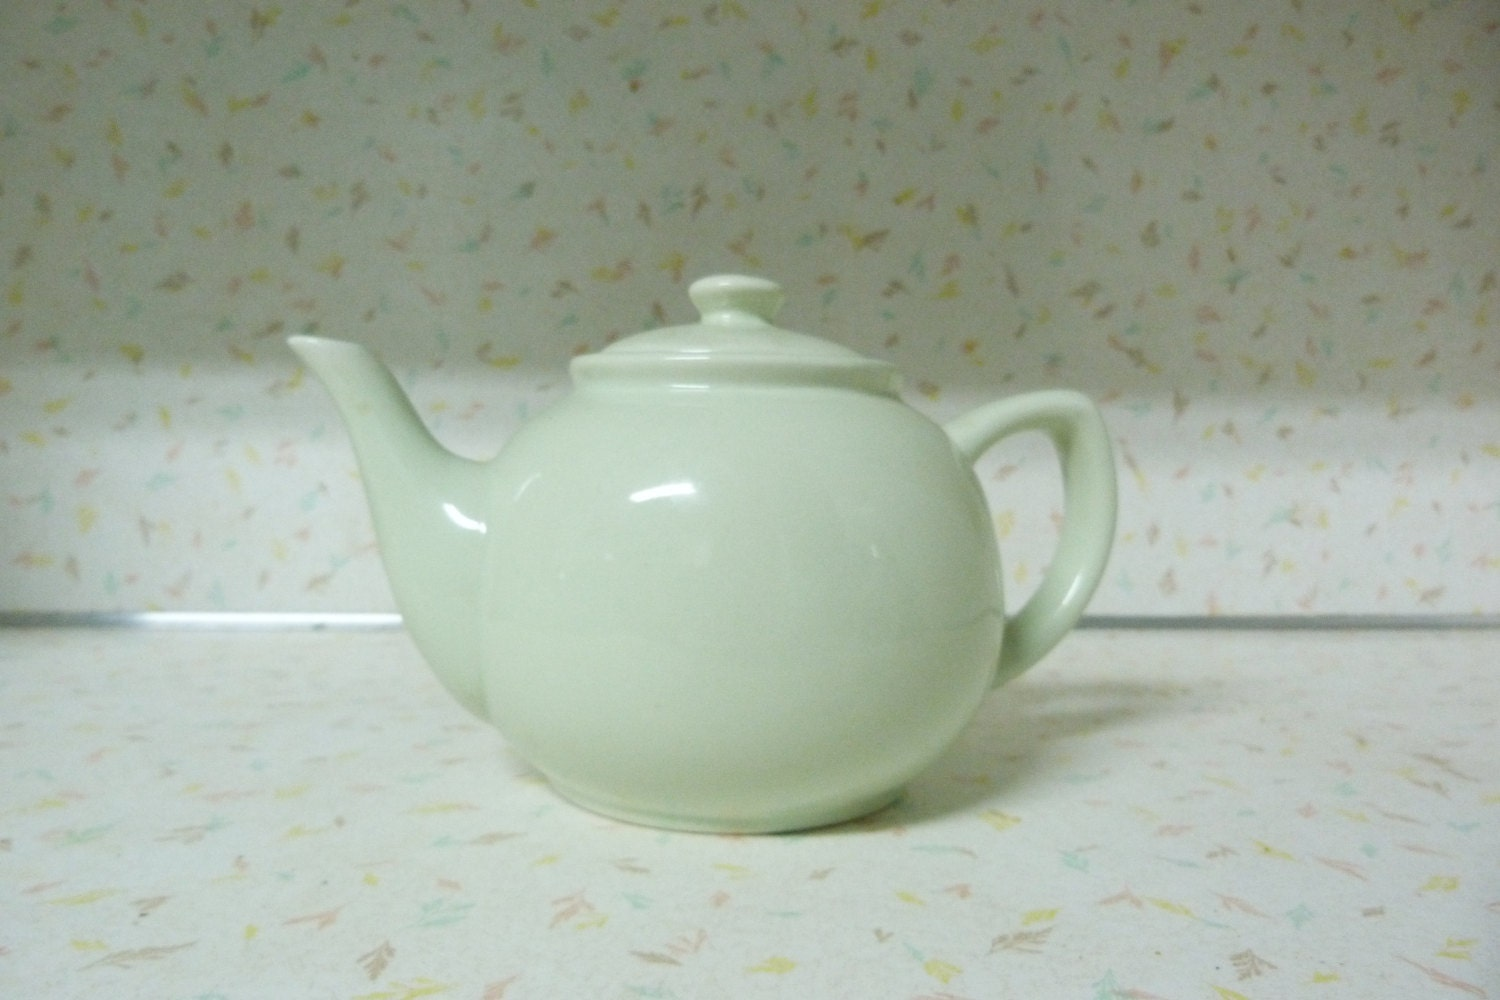 1940's-50's Light Mint Green Teapot Mid Century Modern So Cute Vintage Mint Green Teapot - RavishingRetro